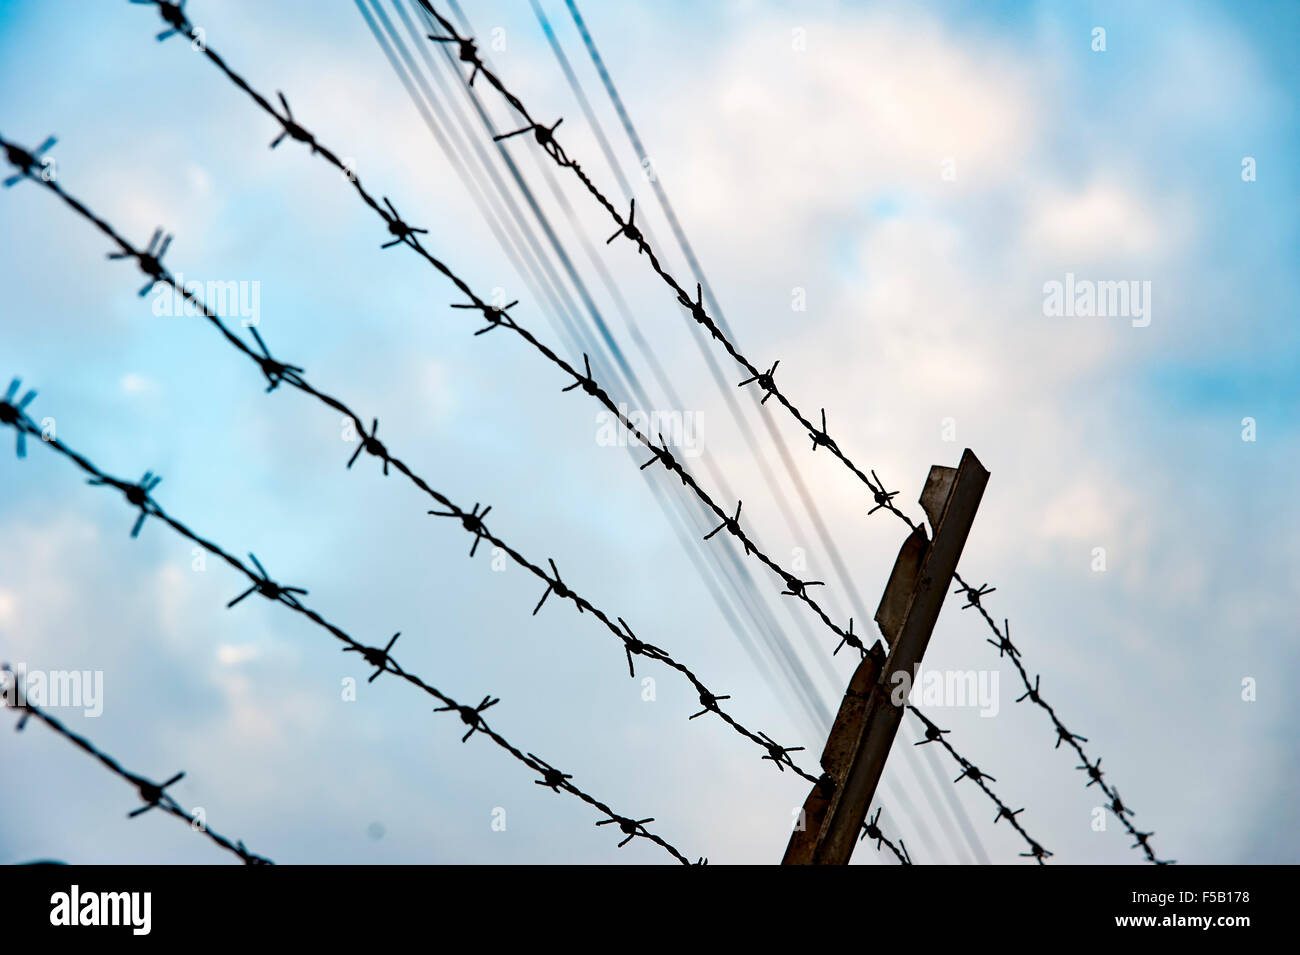 Metal fence with spike pointing to the sky - Stock Image